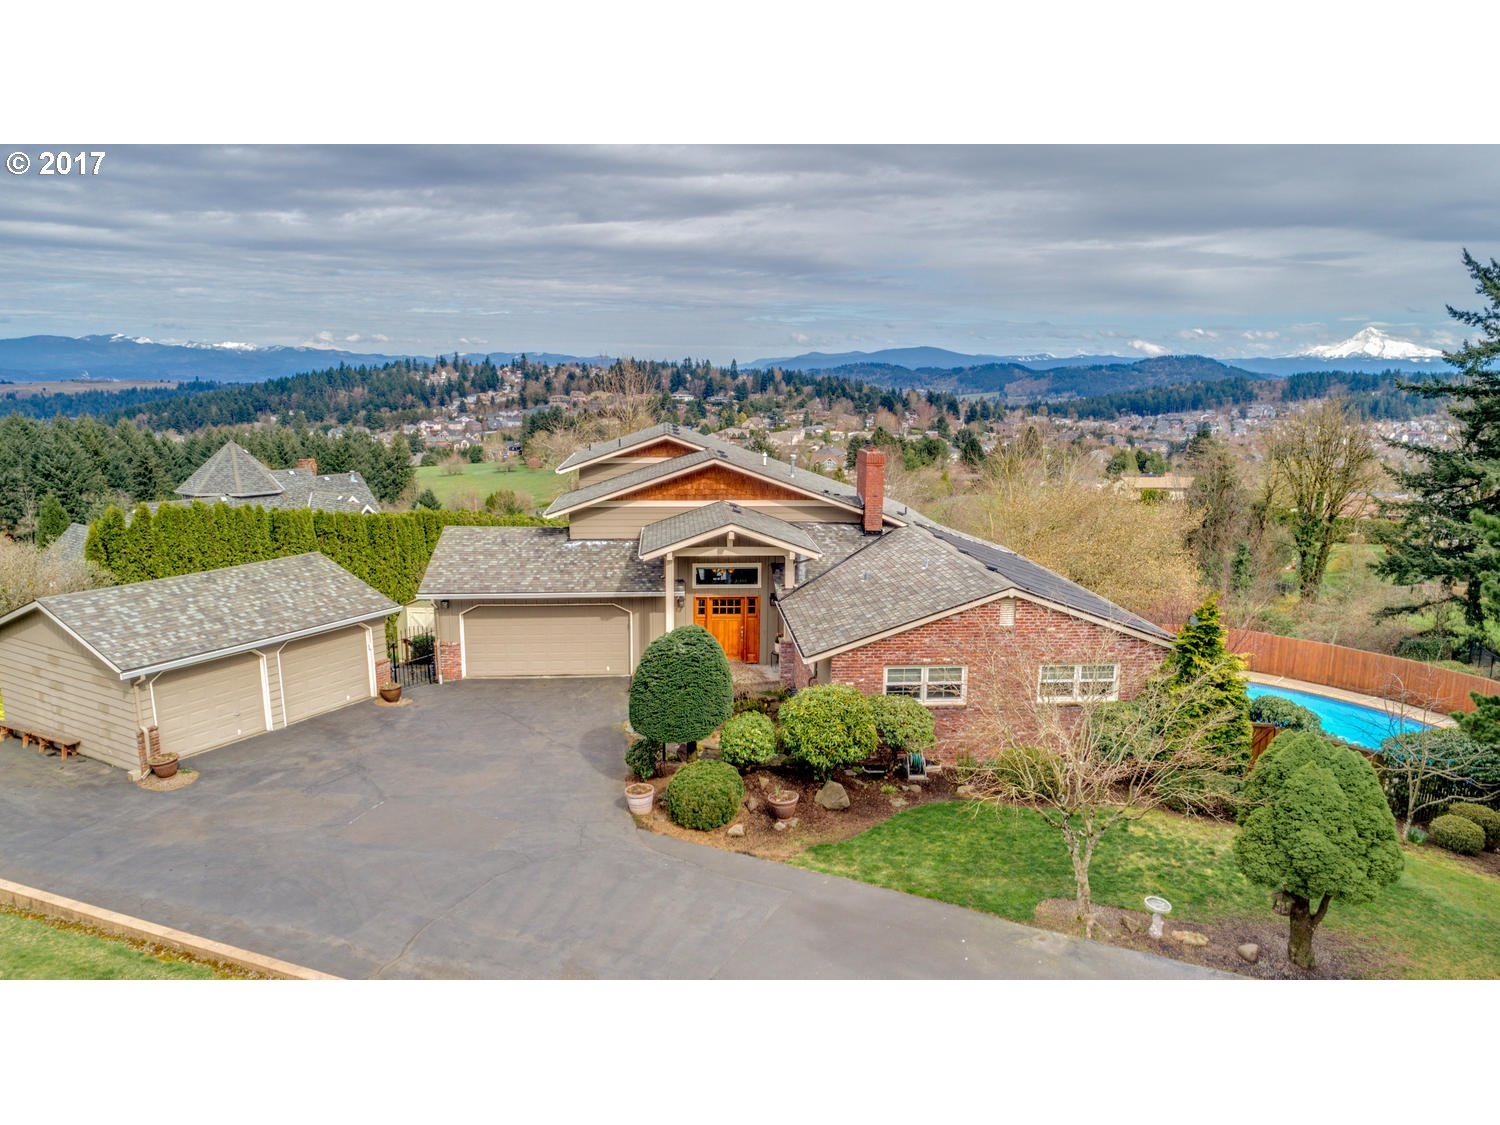 12455 SE RIDGECREST RD, Happy Valley, OR 97086